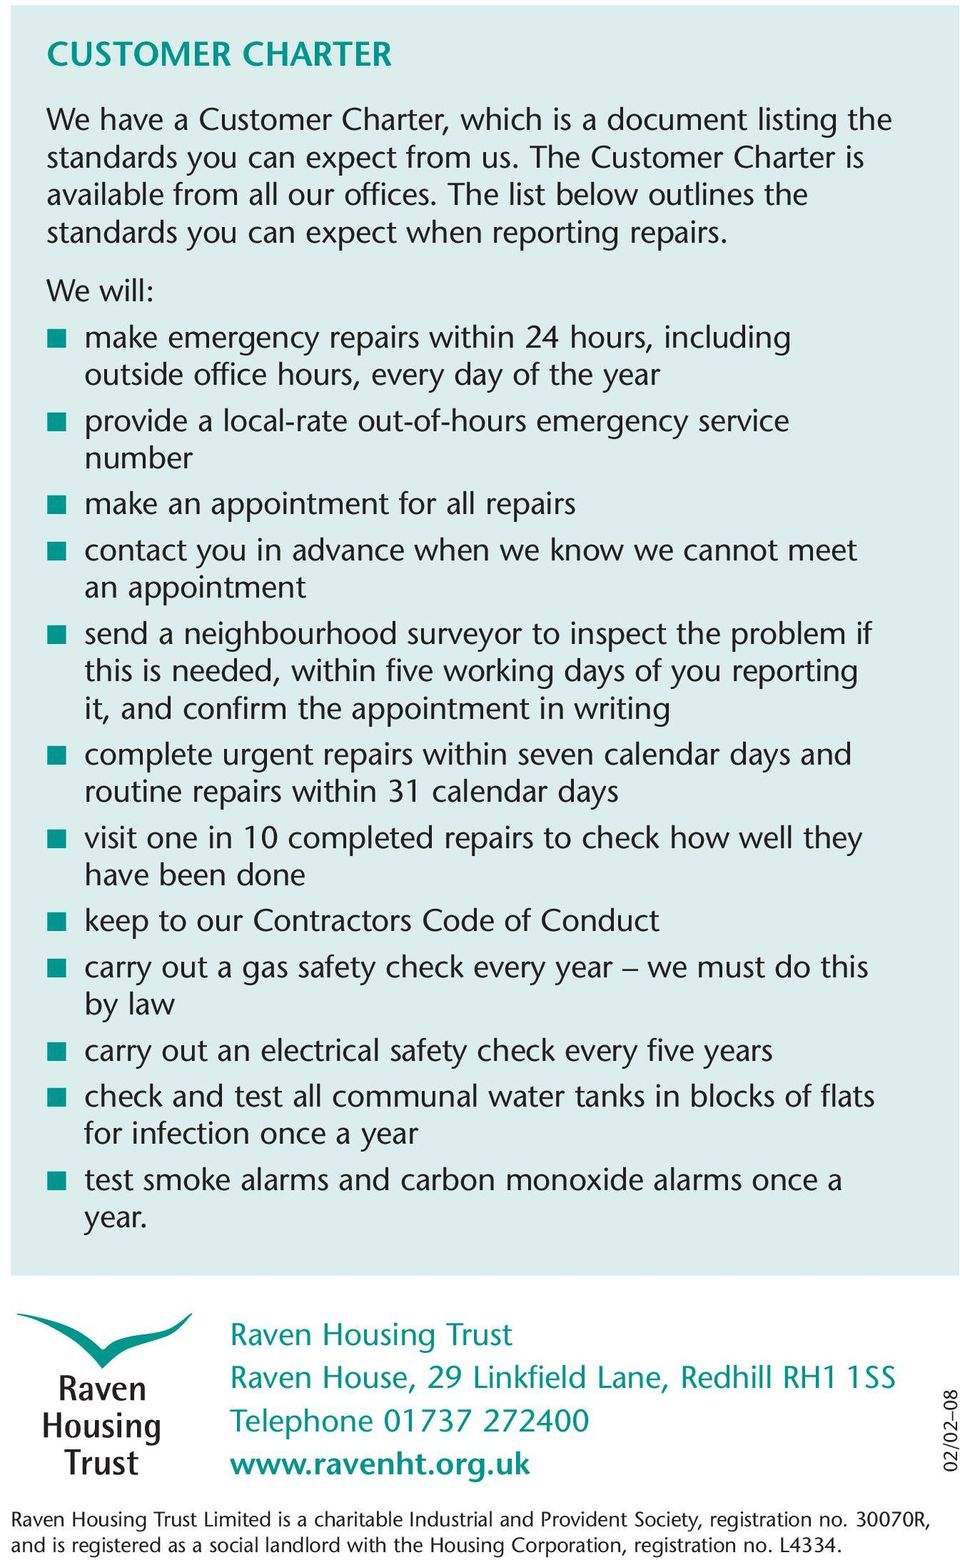 We will: make emergency repairs within 24 hours, including outside office hours, every day of the year provide a local-rate out-of-hours emergency service number make an appointment for all repairs